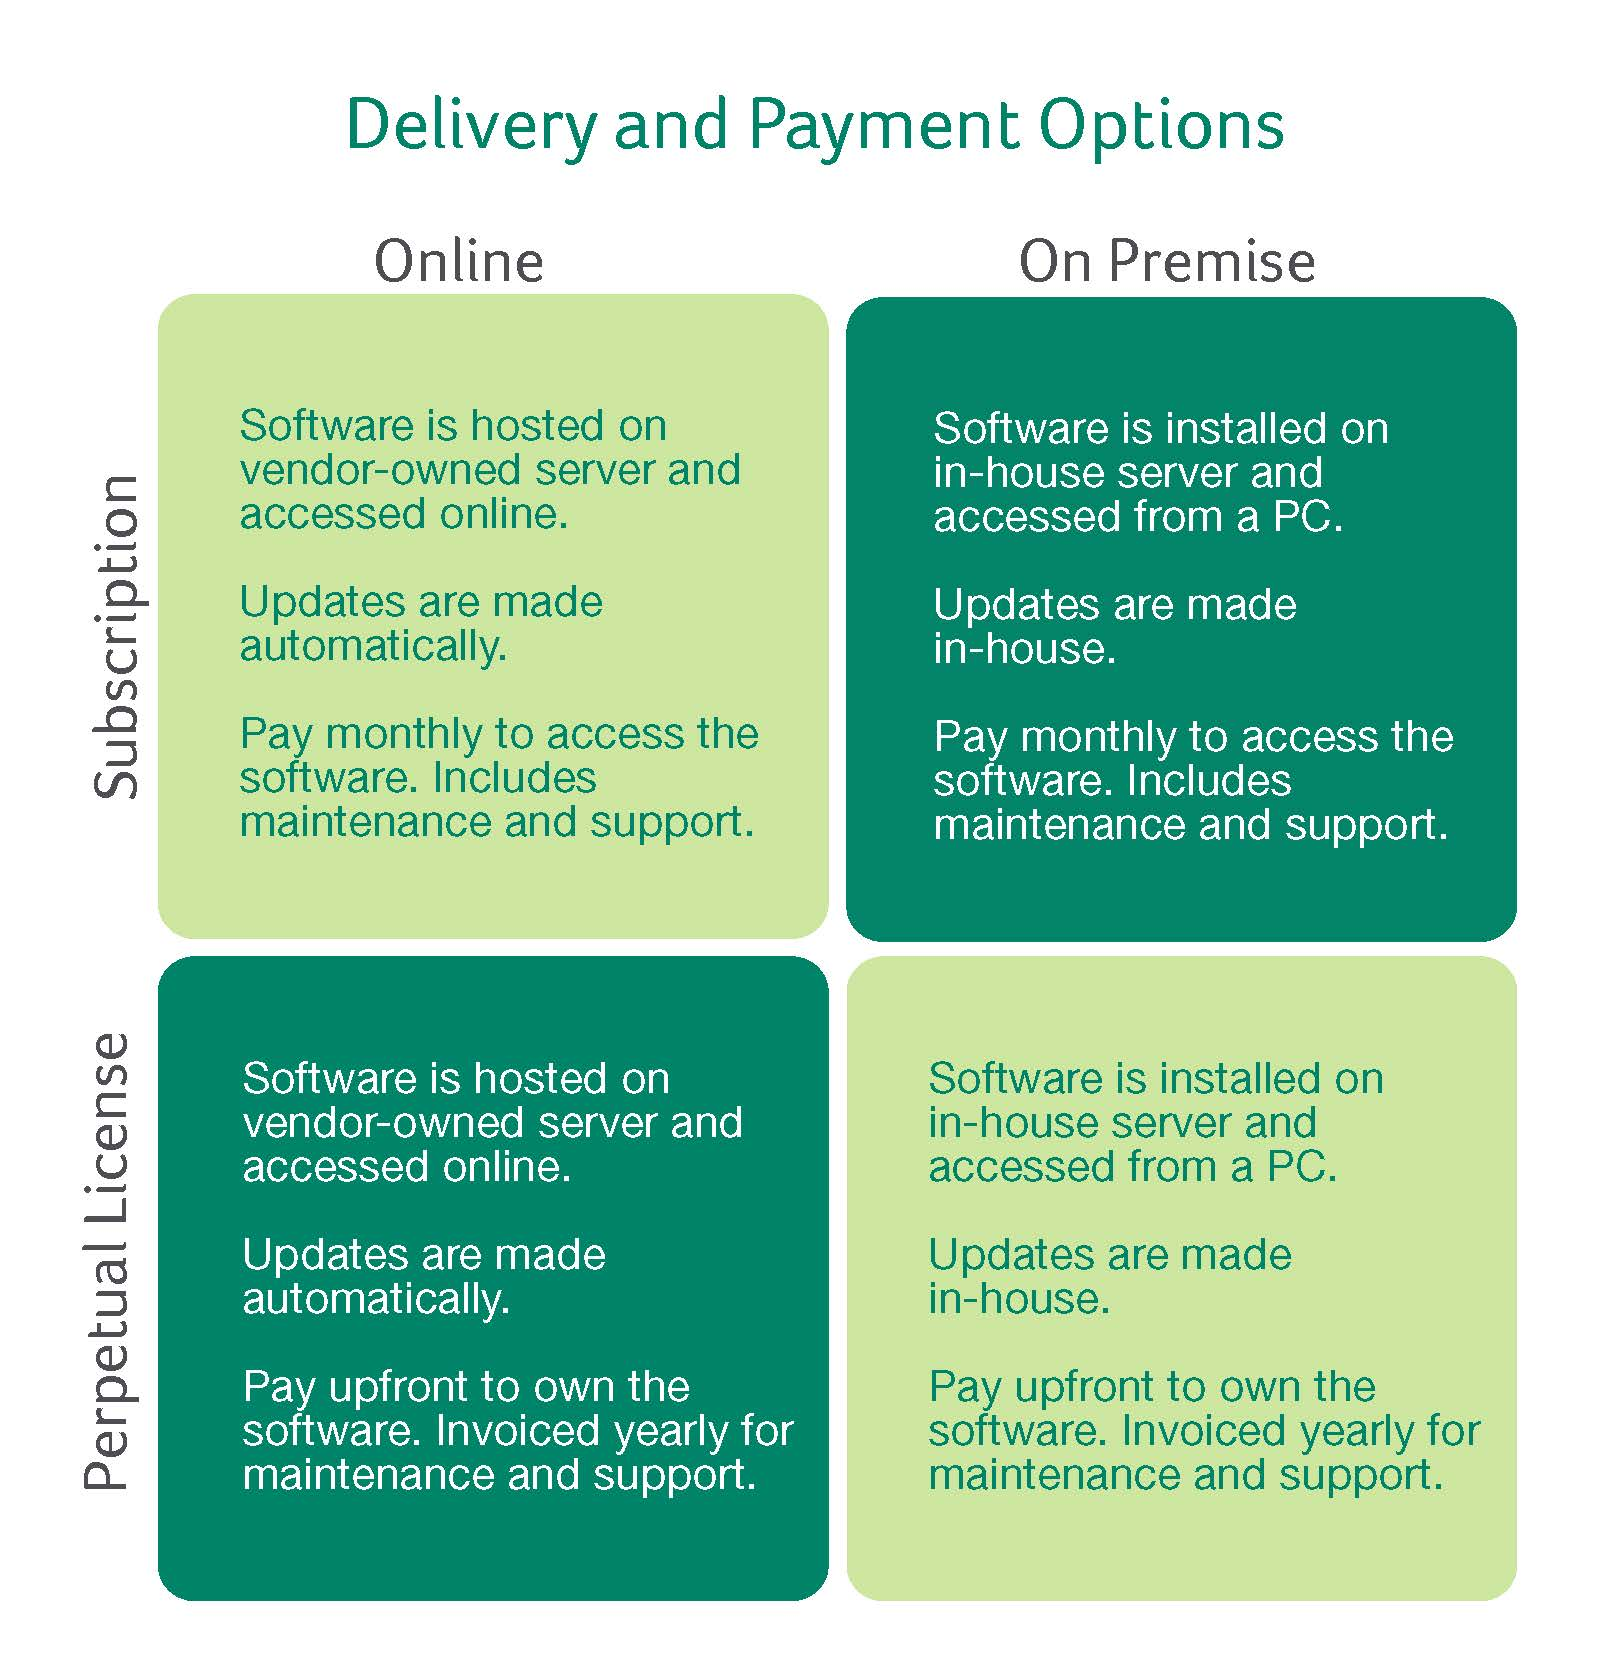 Sage Nonprofit Online Pricing & Delivery Options